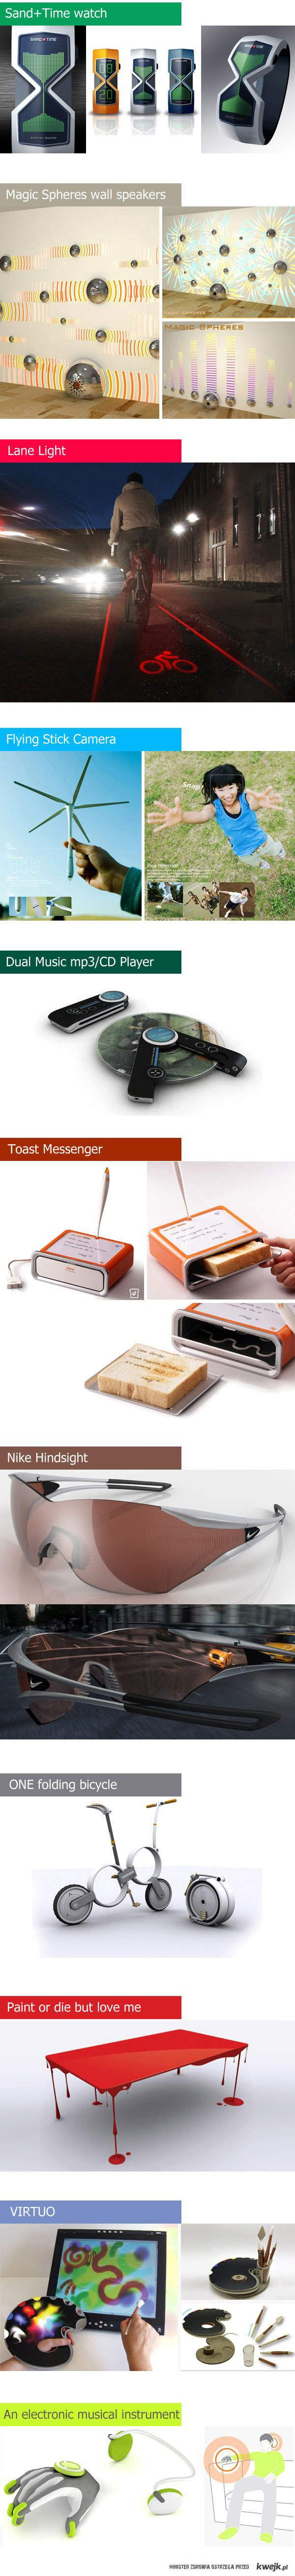 I want the toaster especially!: Funny Inventions, Takemymoney, Music Instruments, Funny Pictures, Dreams House, Take My Money, Shut Up, Cool Stuff, Tech Gadgets